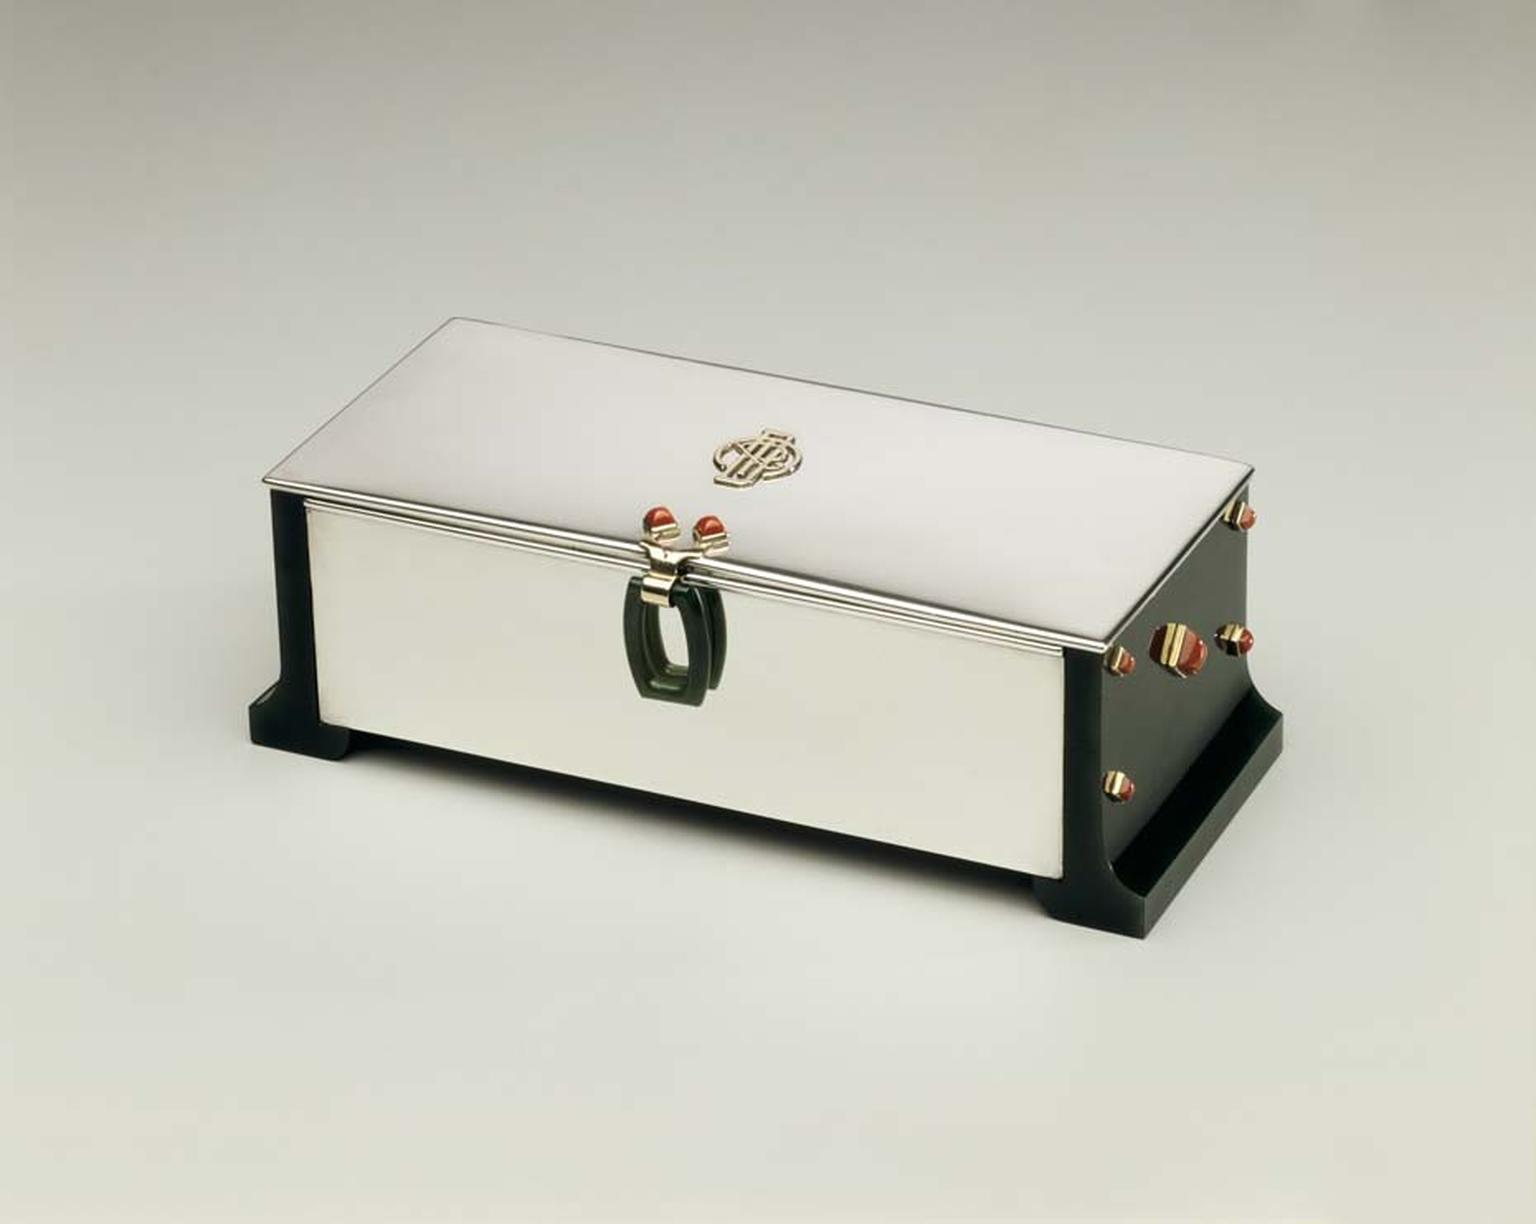 Cartier 1935 Monogrammed Box with silver, jade and coral. Image: Courtesy Hillwood Estate, Museum and Gardens